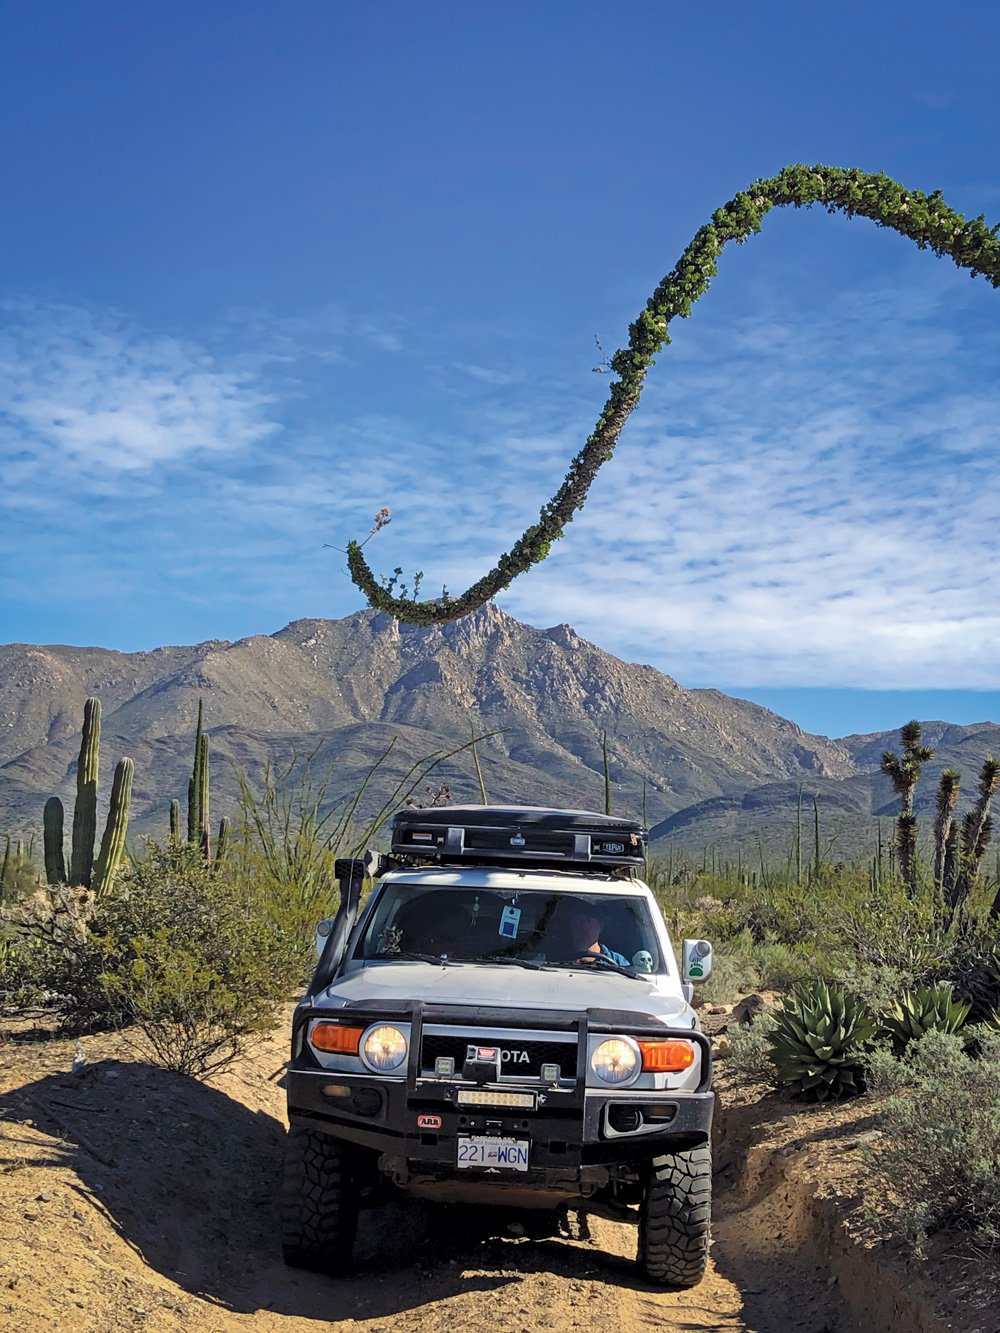 FJ Cruiser on one of many adventures outdoors